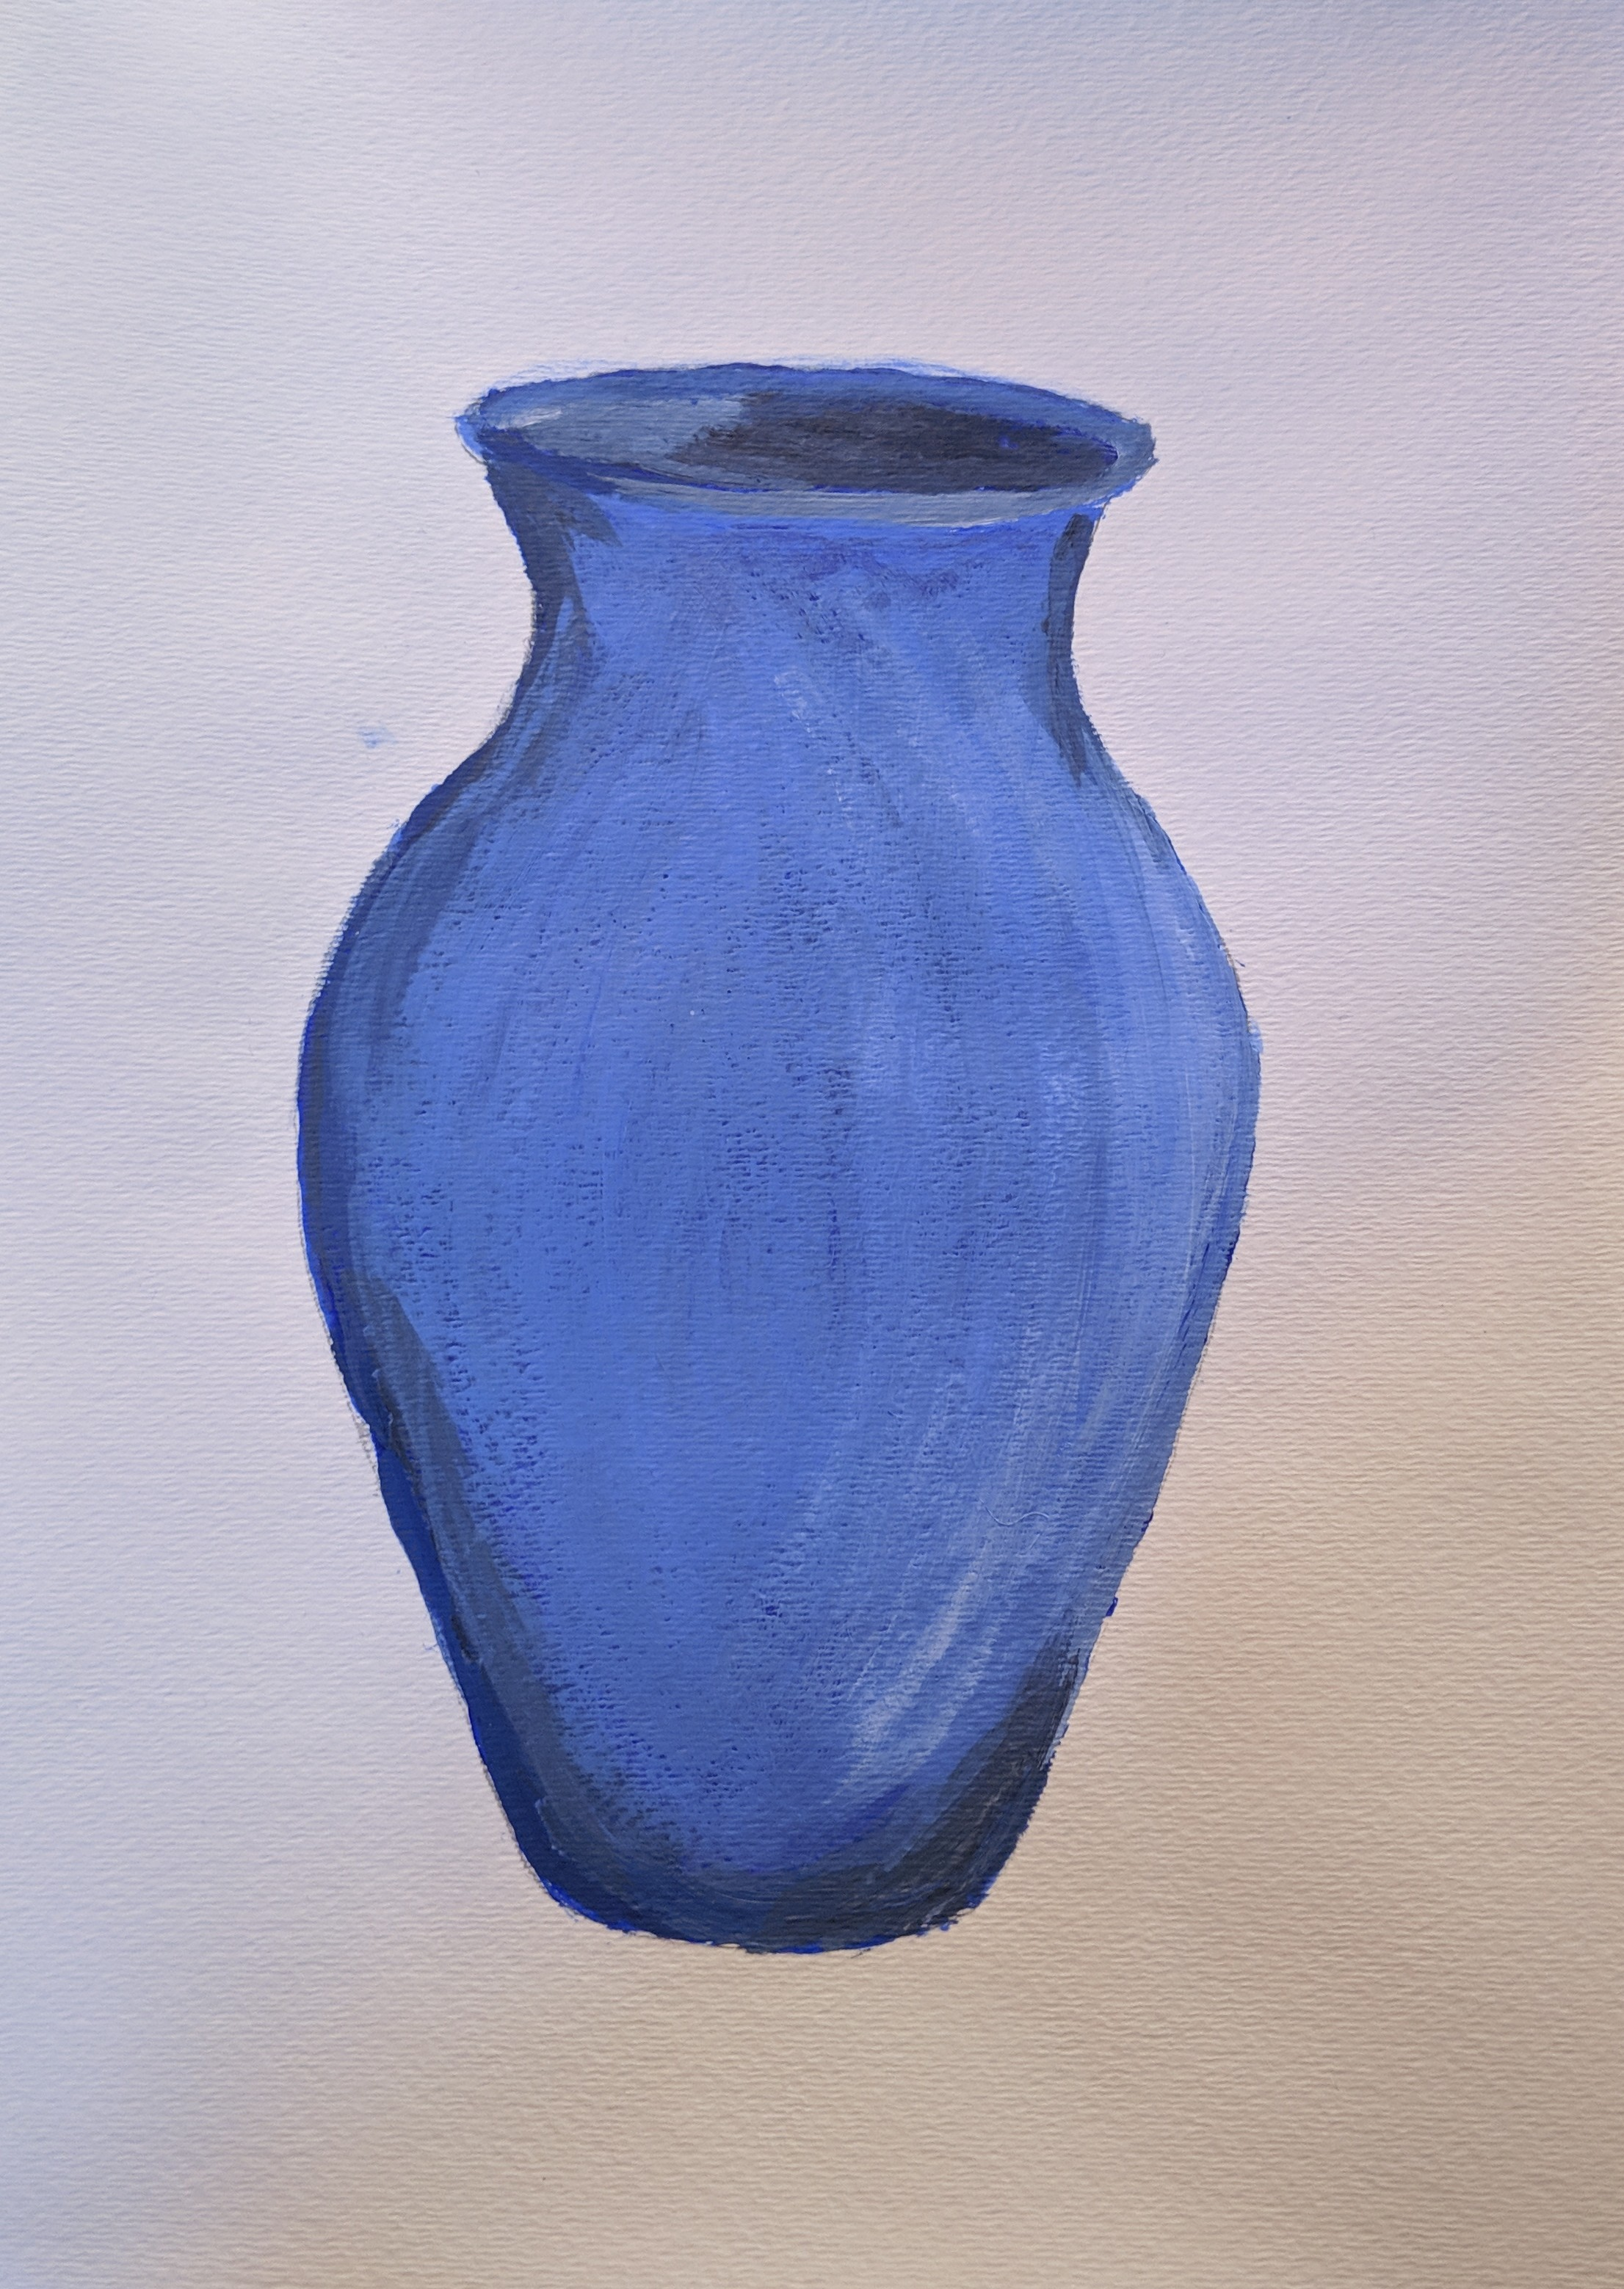 1st kintsugi vase no cracks_20190828_175343(1)